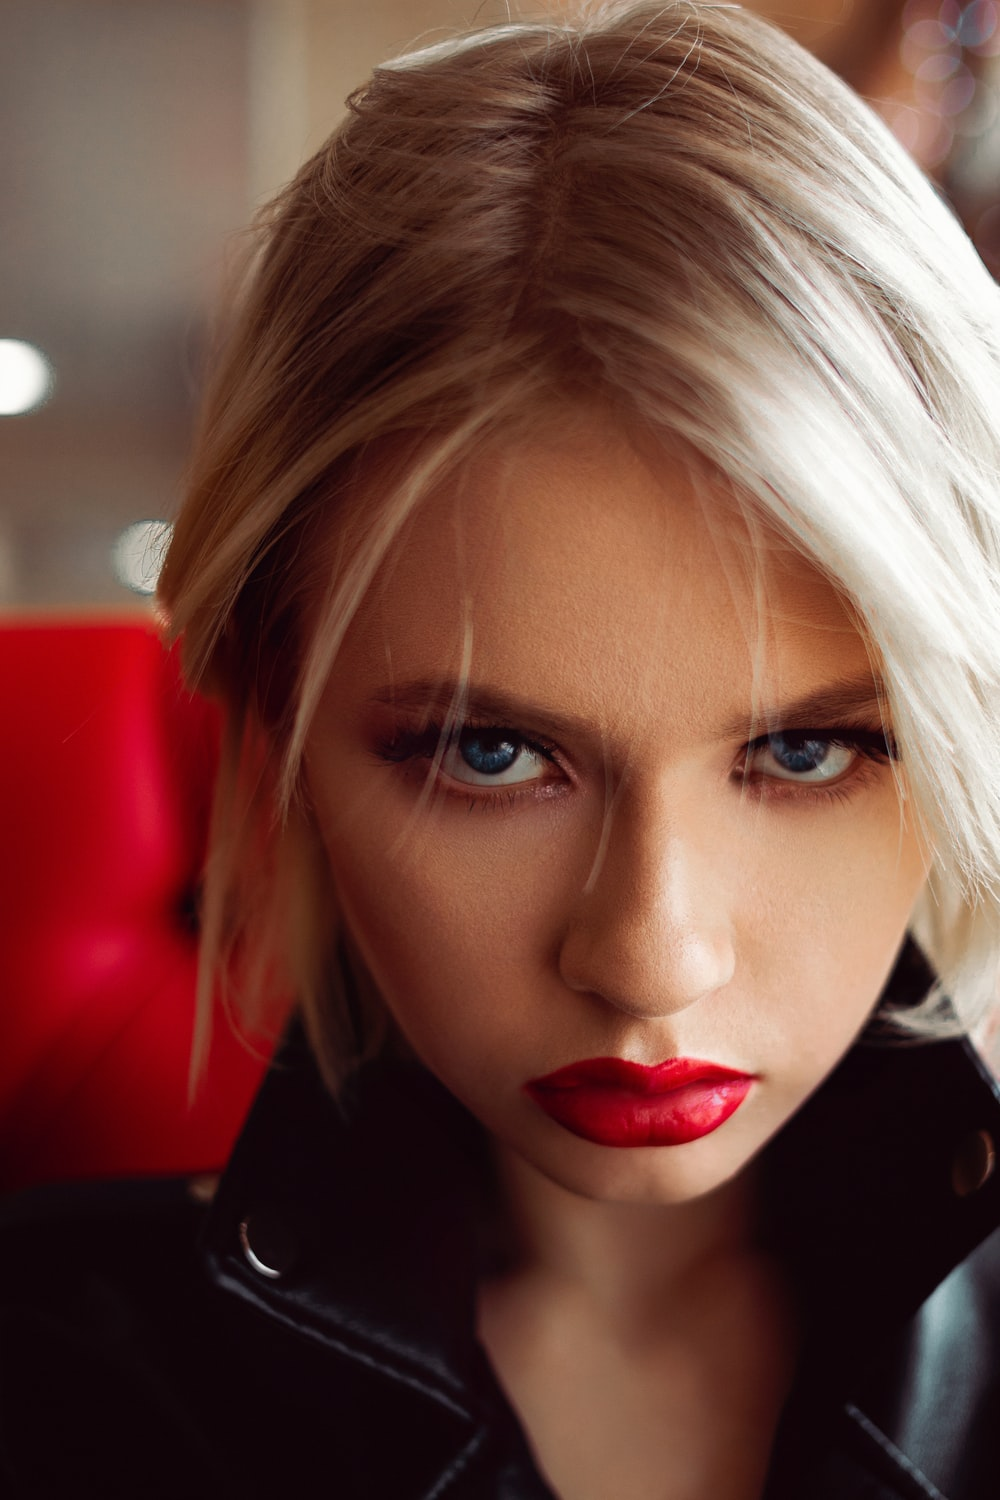 woman with blonde hair wearing red lipstick